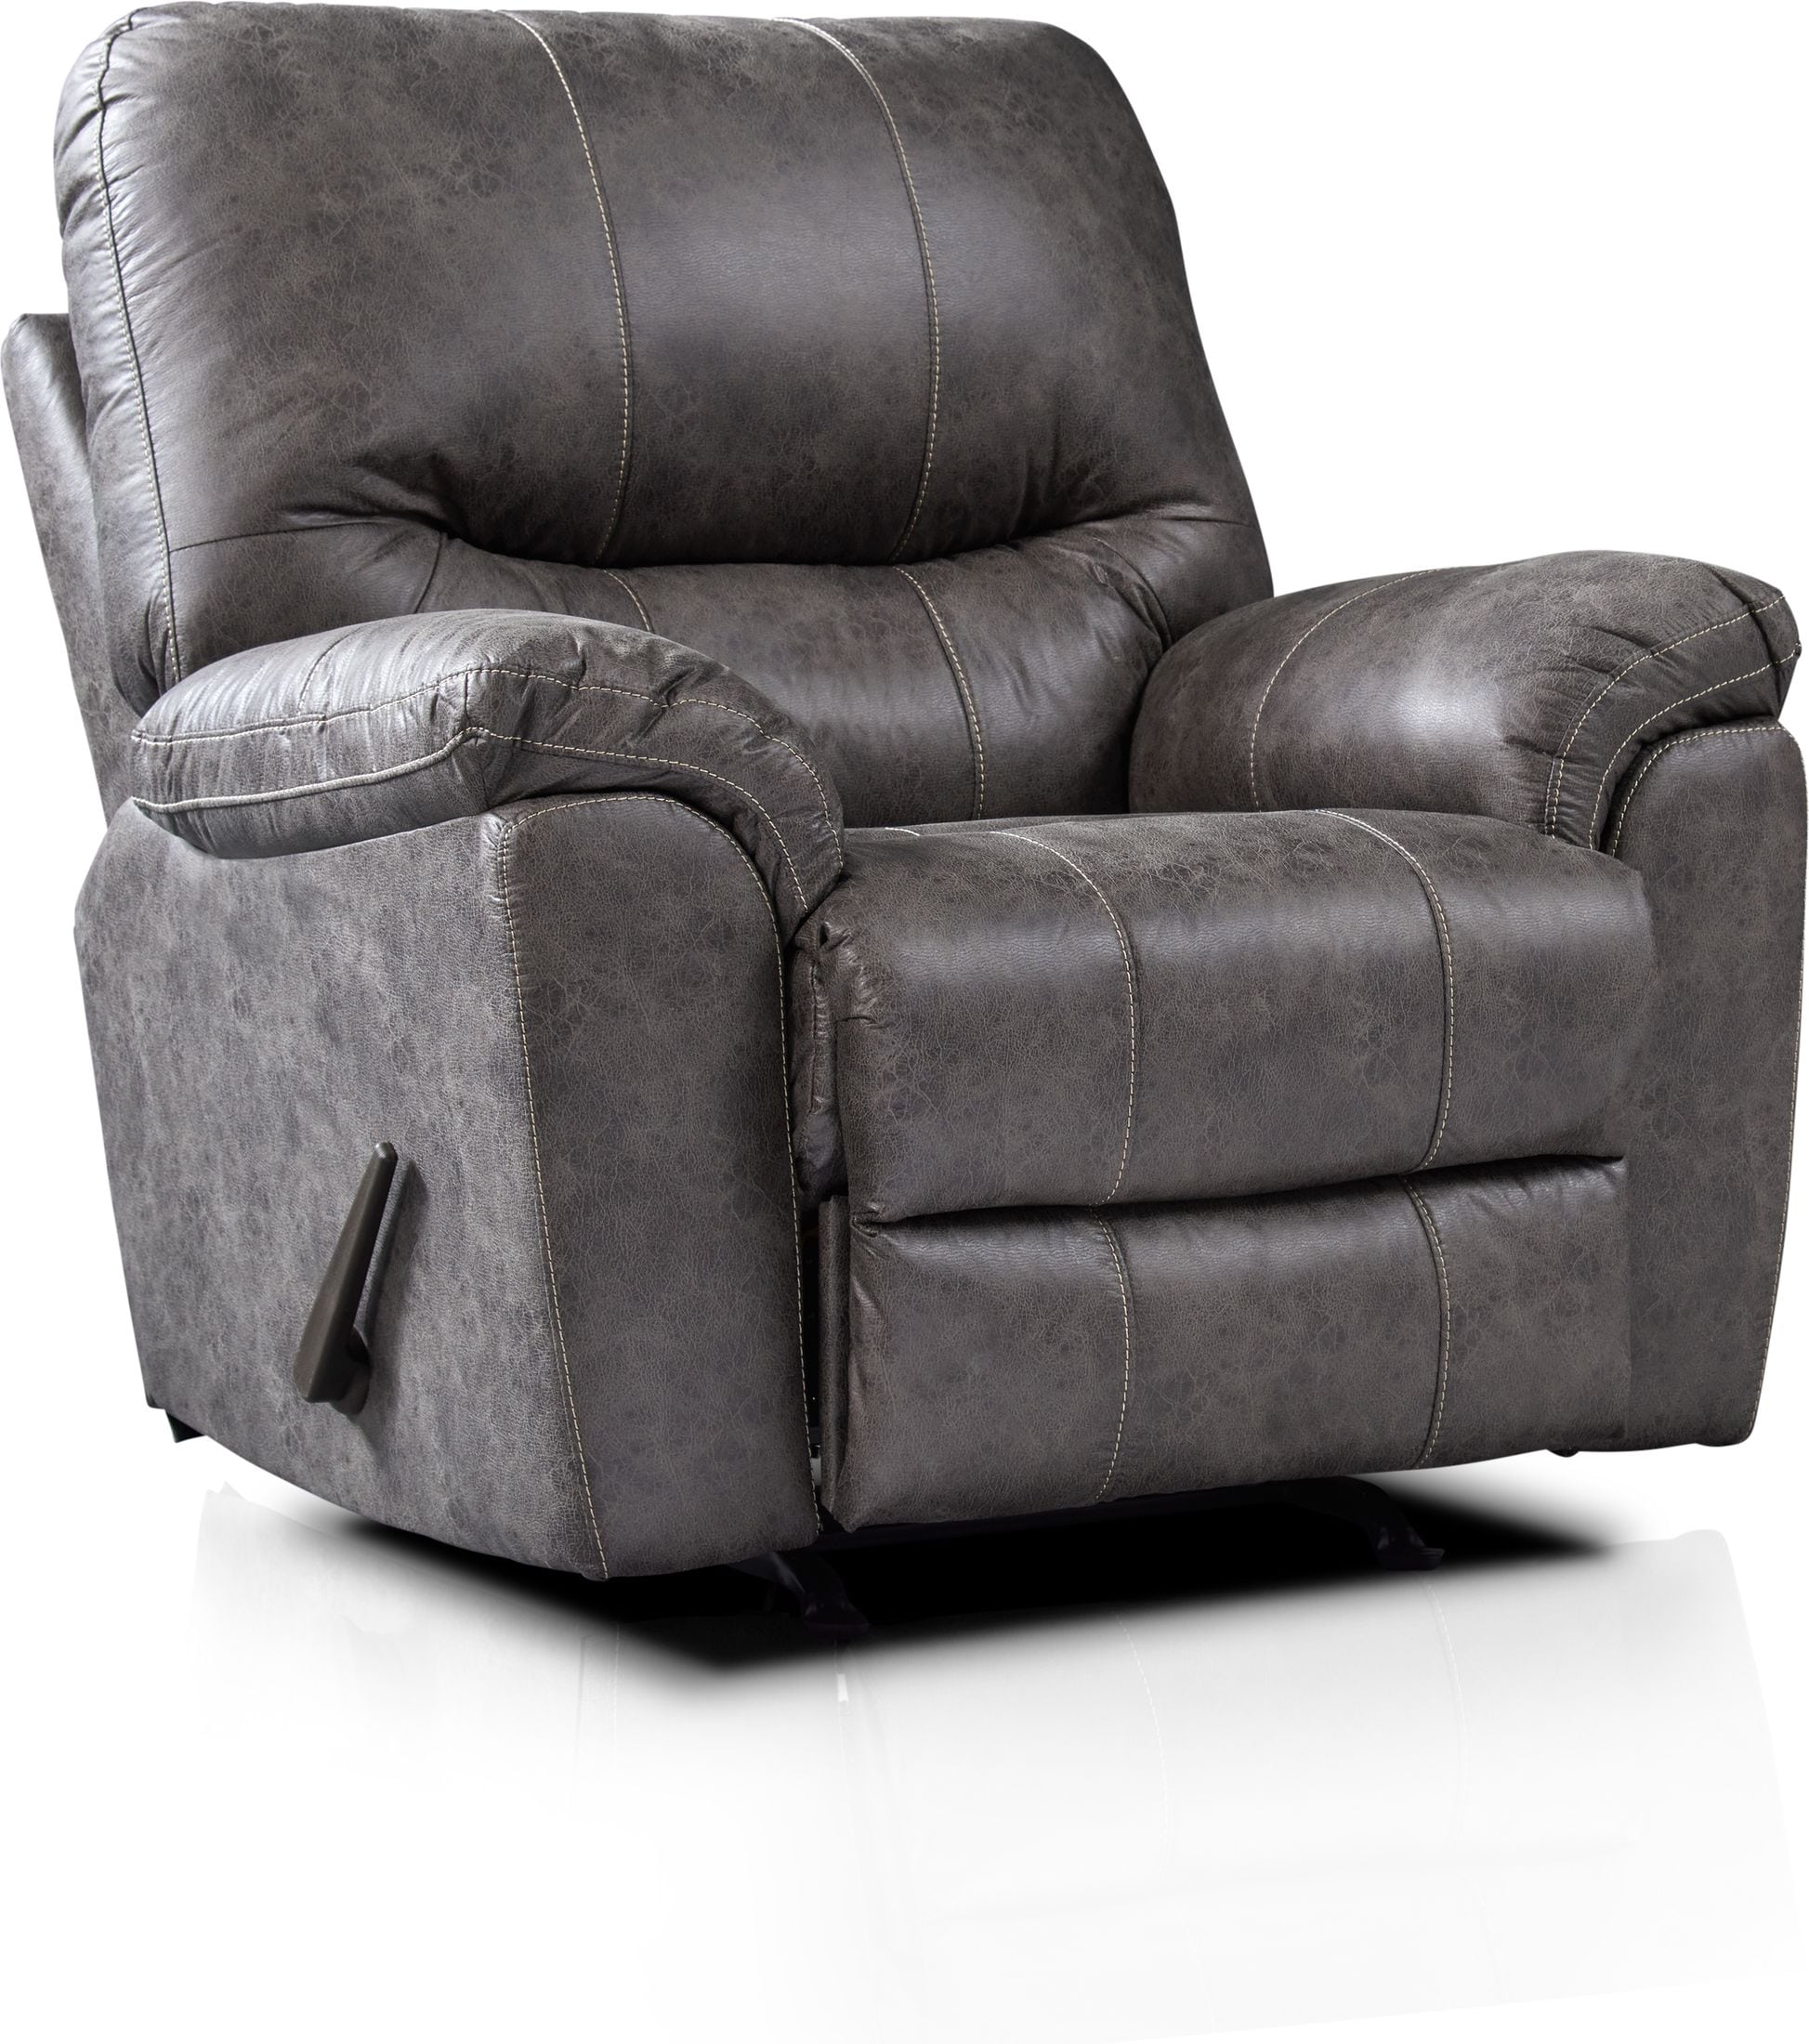 Living Room Furniture - Bennett Manual Recliner